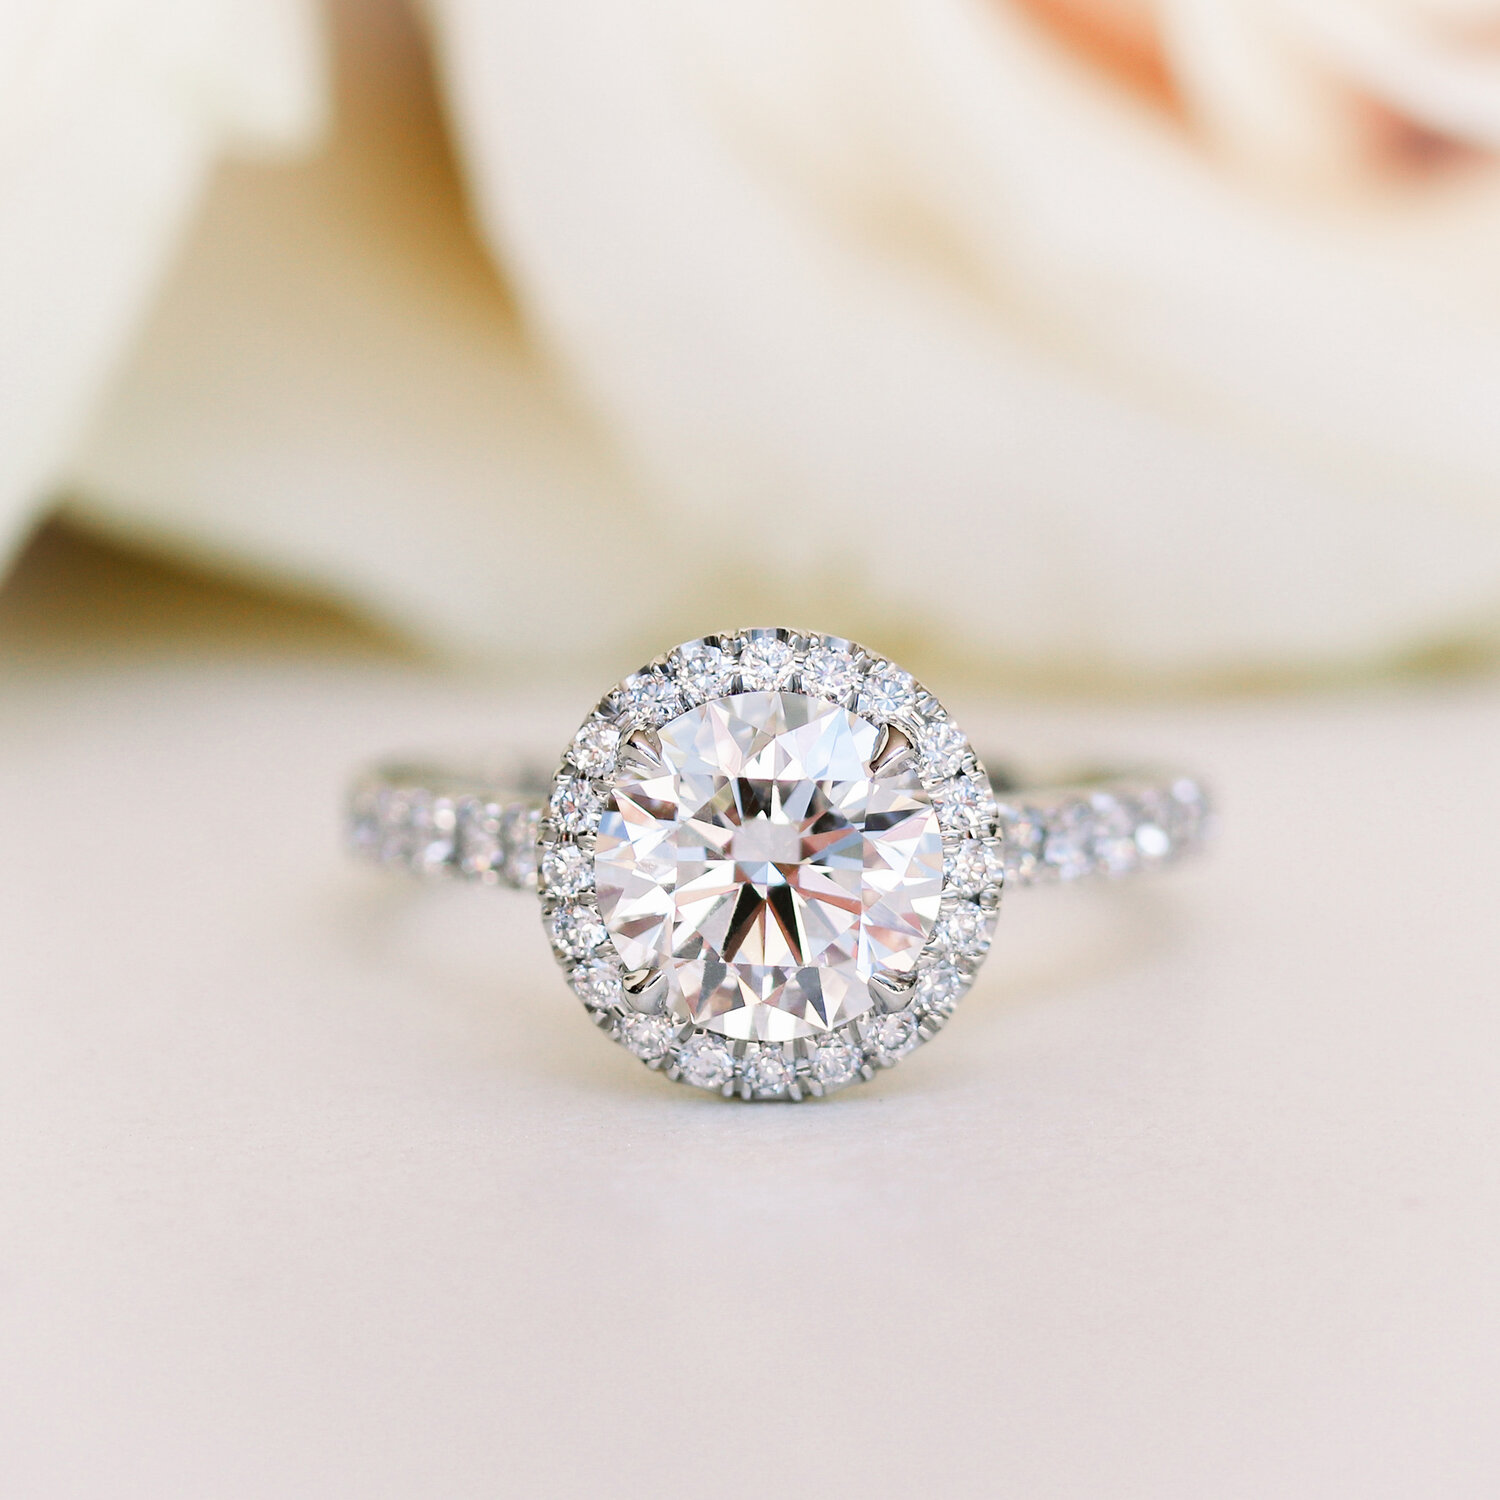 The Ways to Save for an Engagement Ring